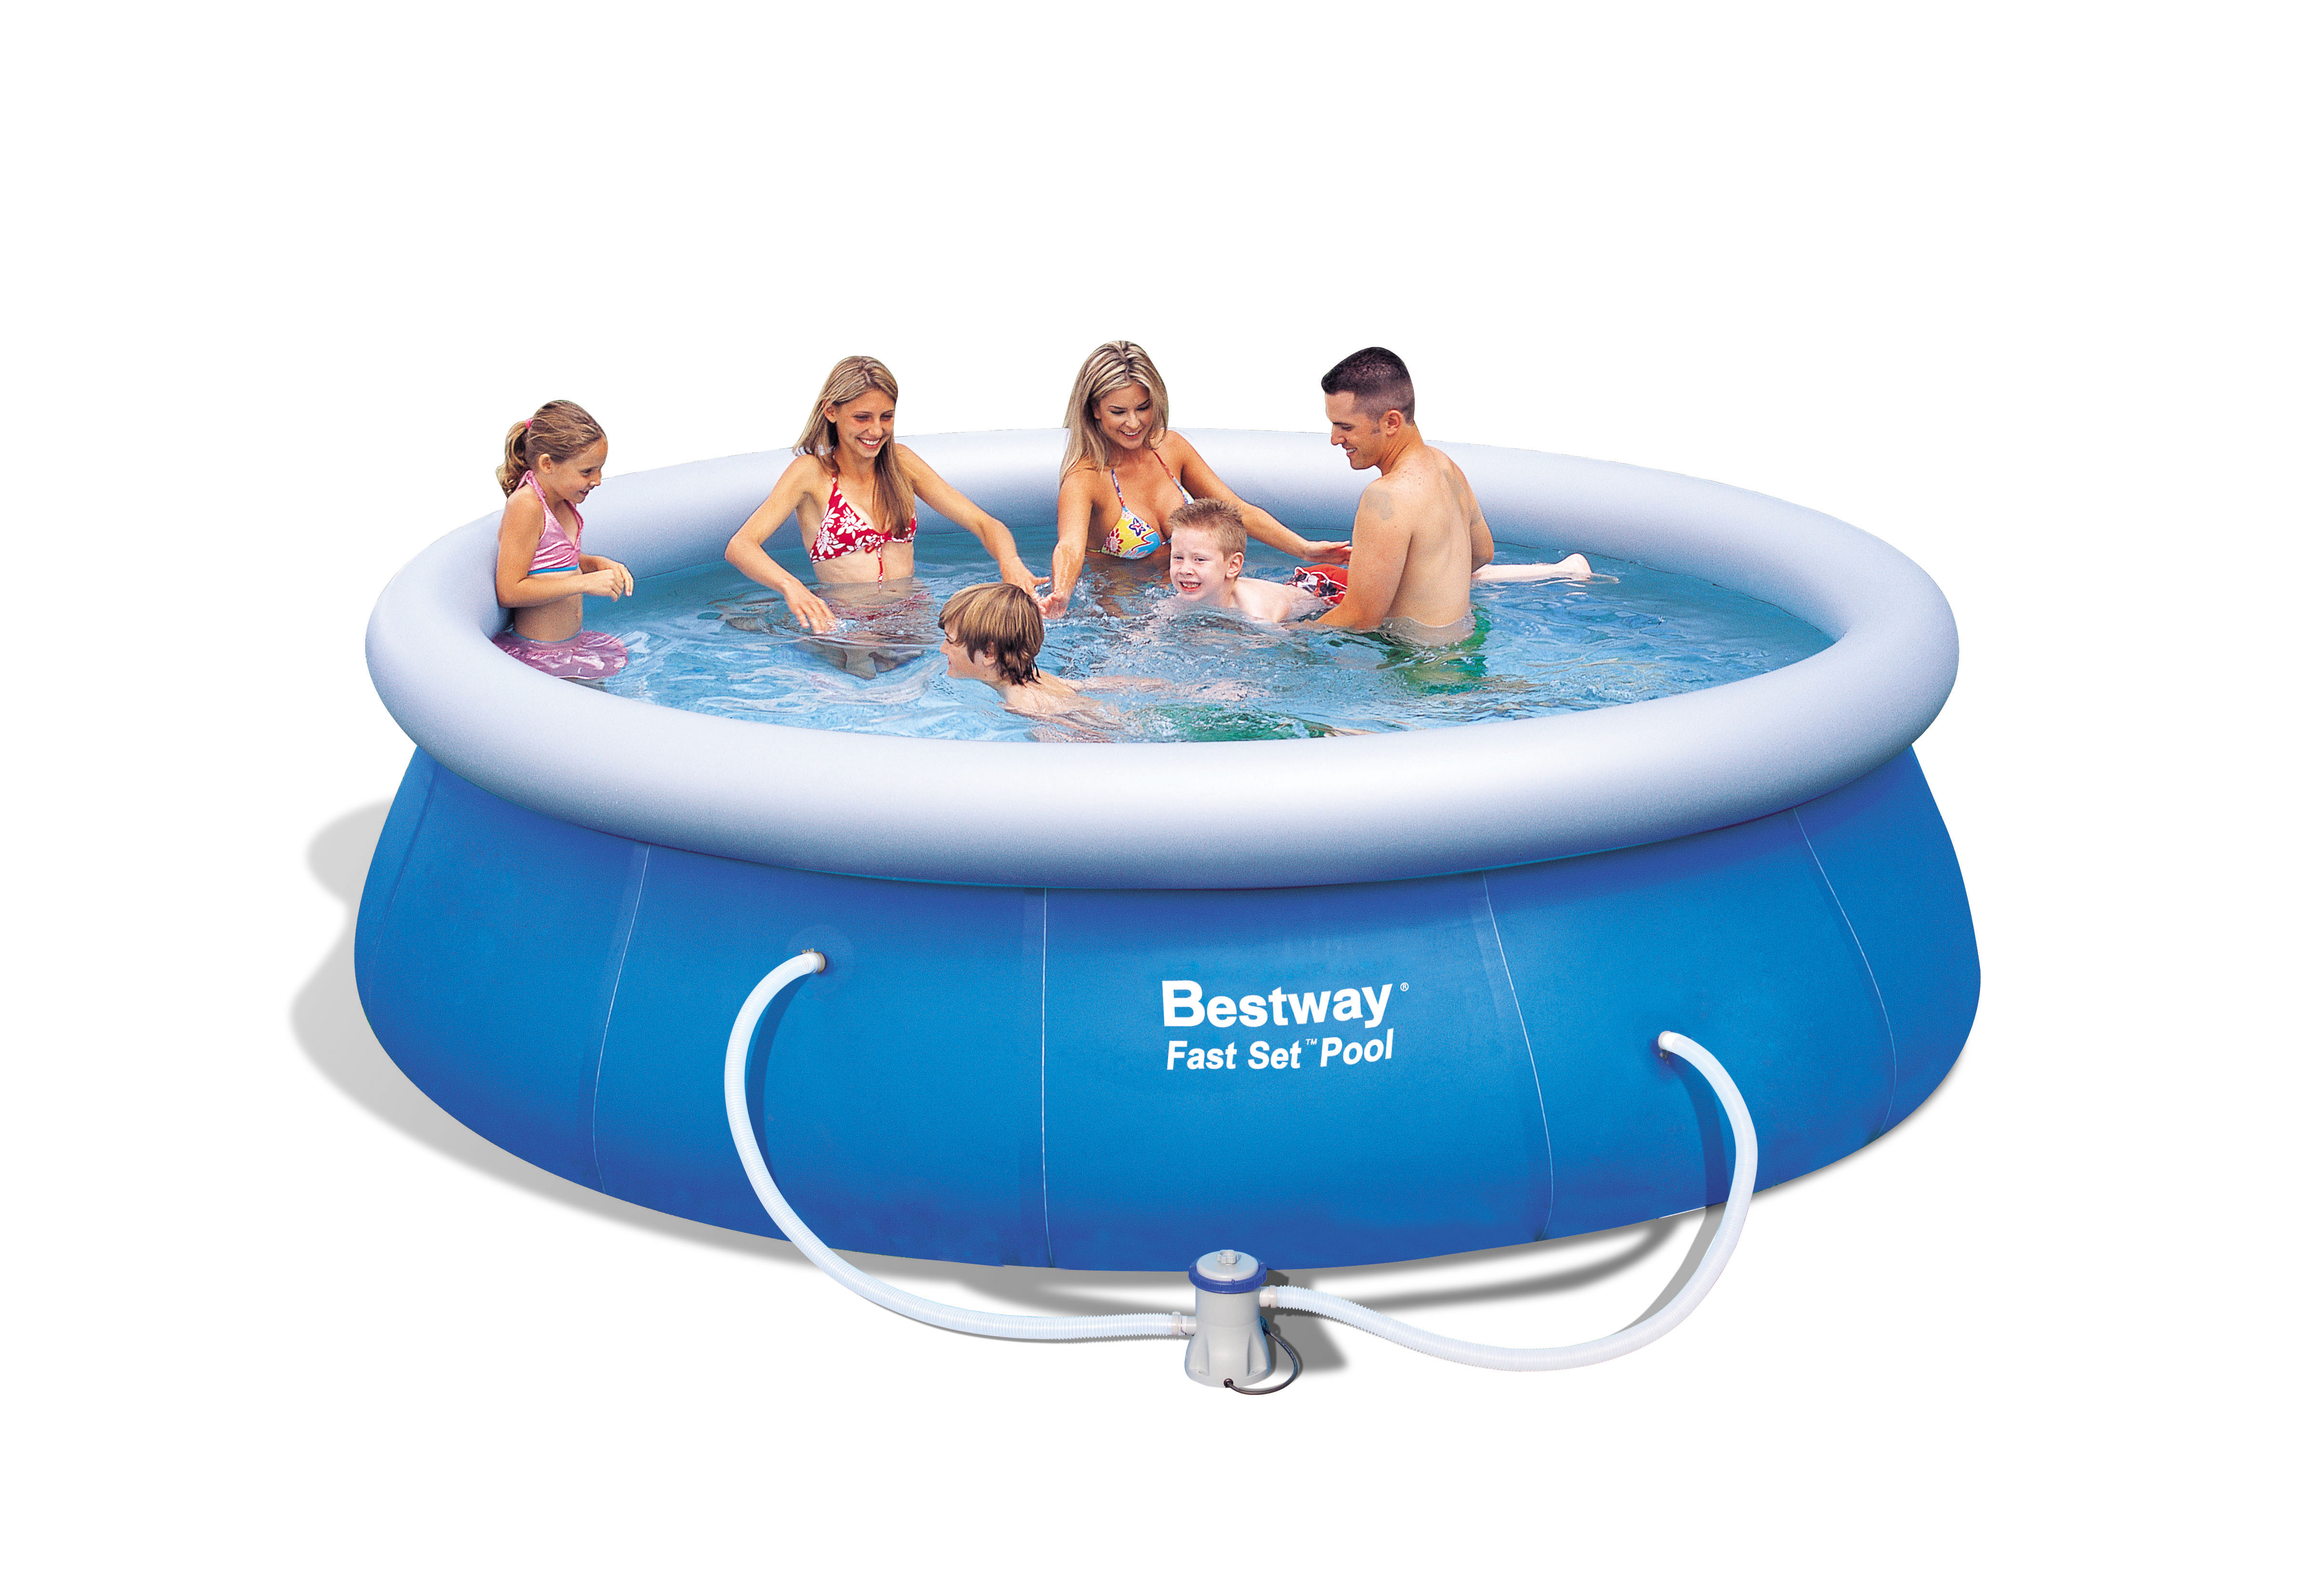 Bestway 12' X 36'' Fast Set Pool - Toys & Games Swimming Pools Accessories